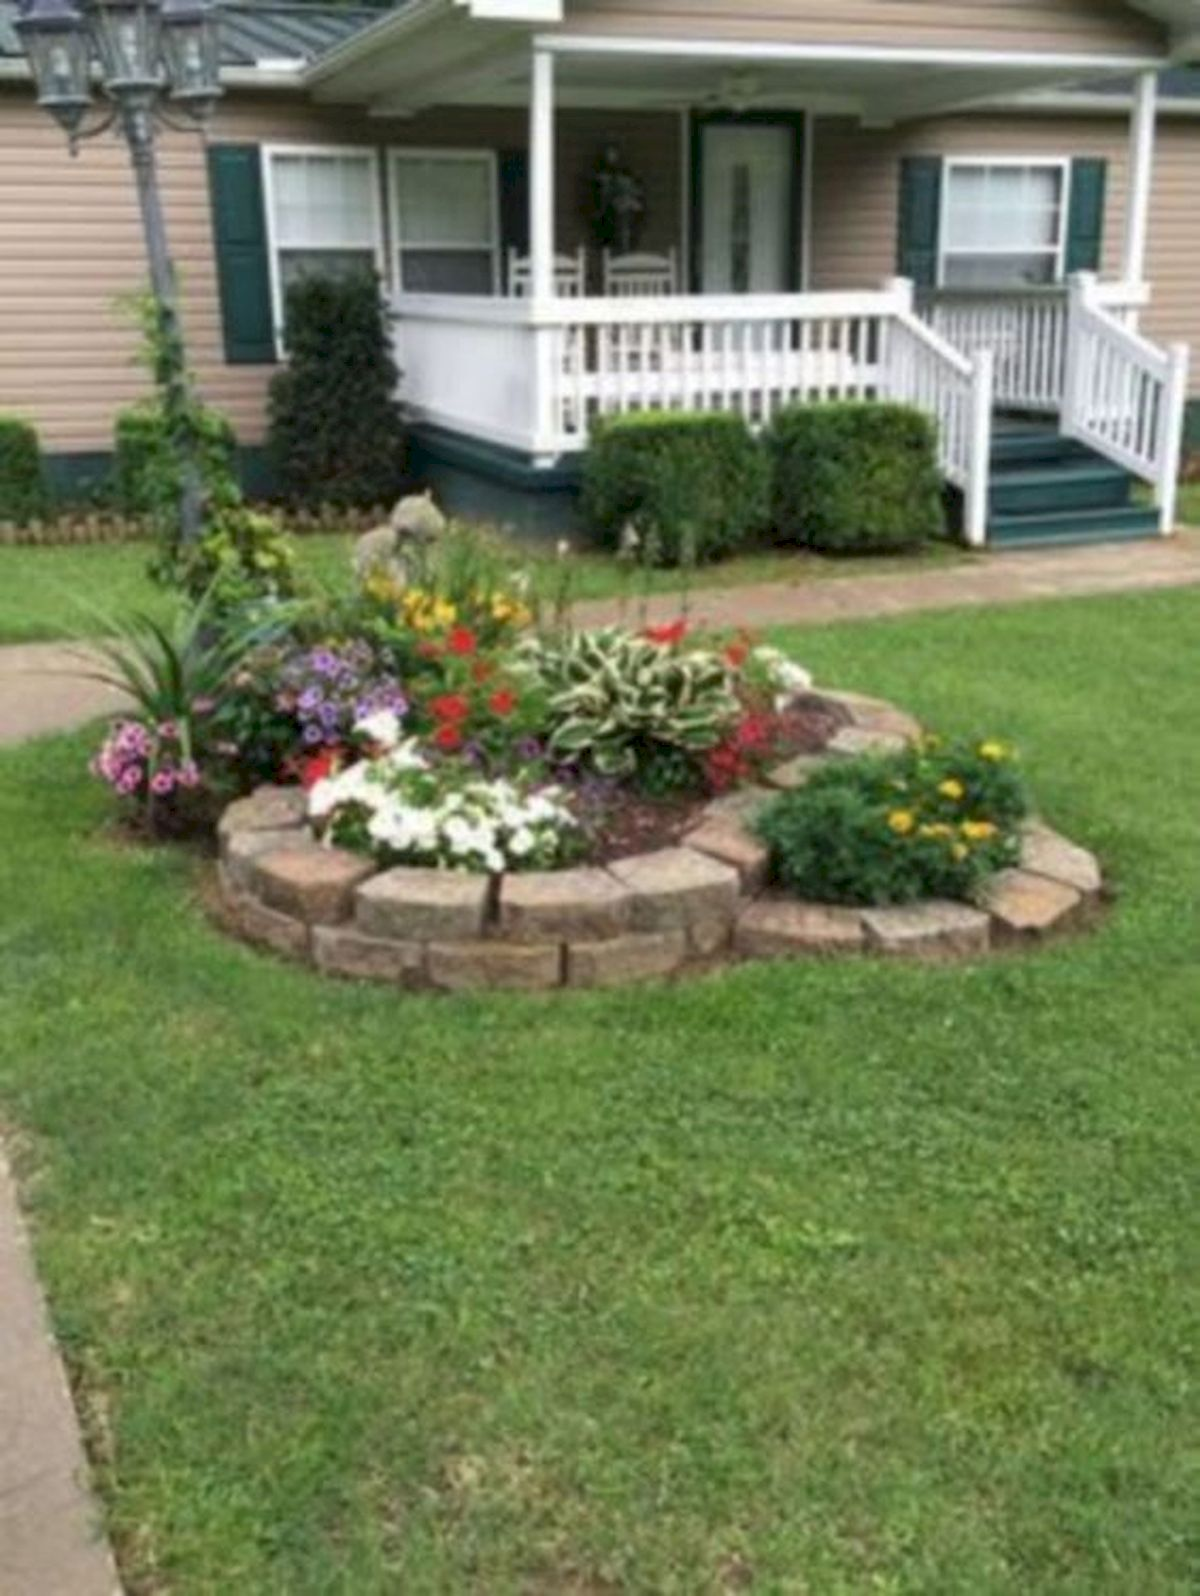 35 Awesome Front Yard Garden Design Ideas 32 House8055 Com